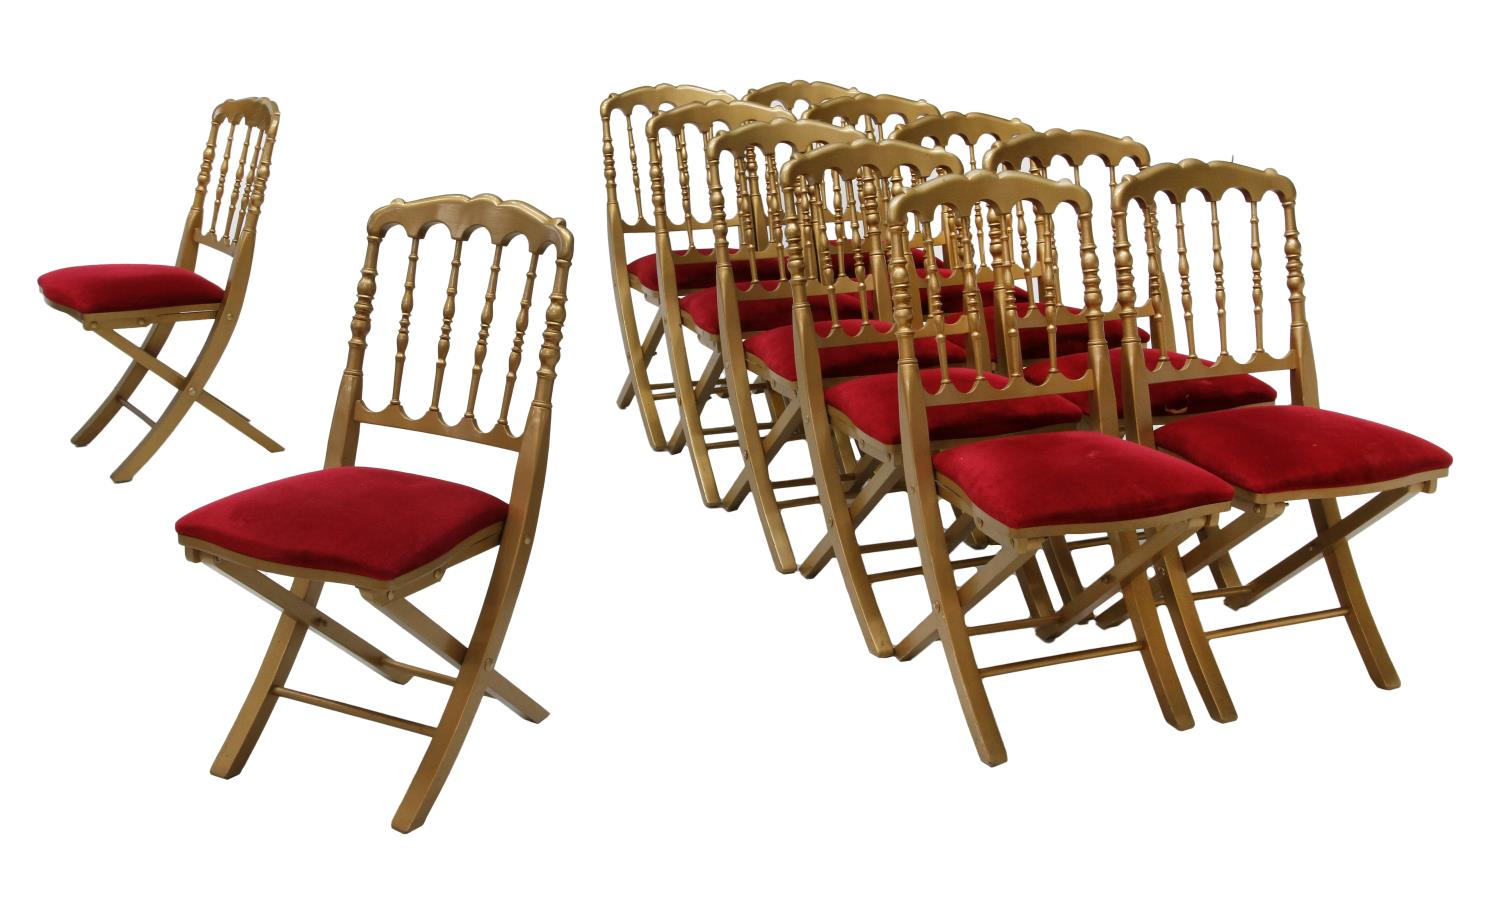 folding chair auction antique rocking chairs for sale 12 hotel aiglon gilt spindled important